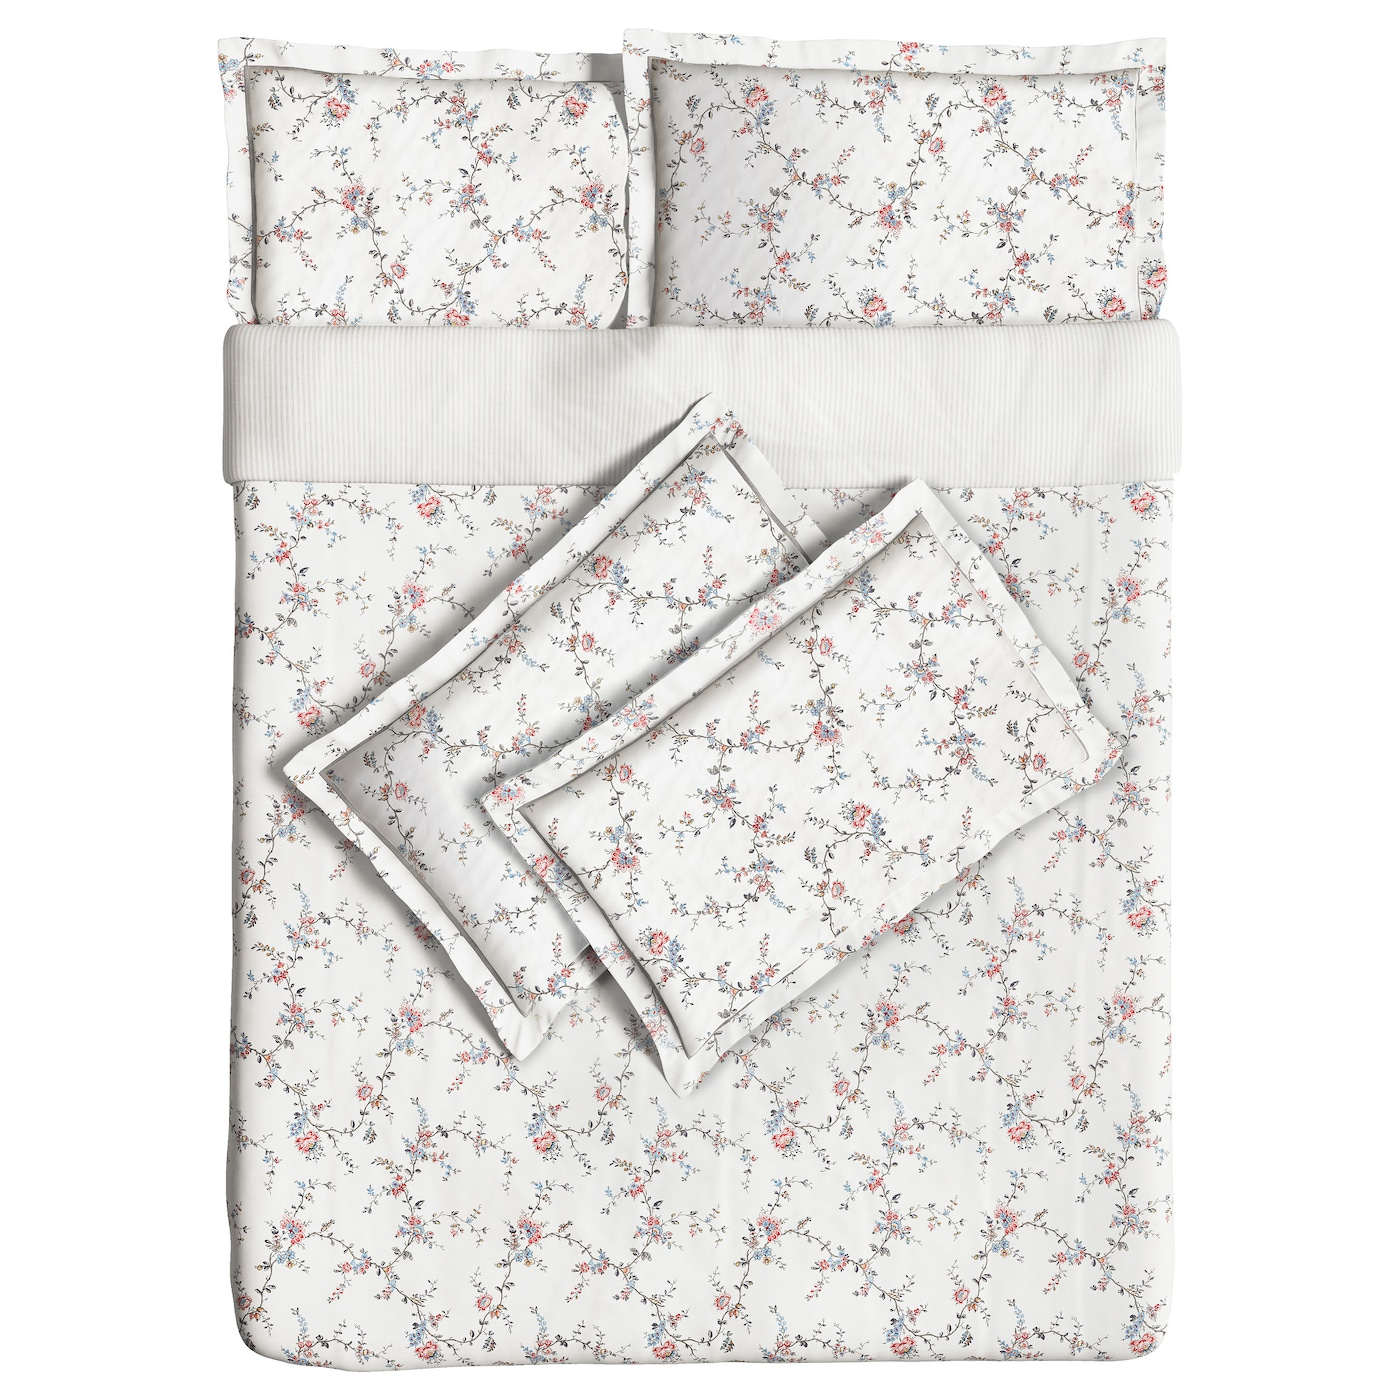 sten rt quilt cover and 4 pillowcases flower 200x200 50x80. Black Bedroom Furniture Sets. Home Design Ideas